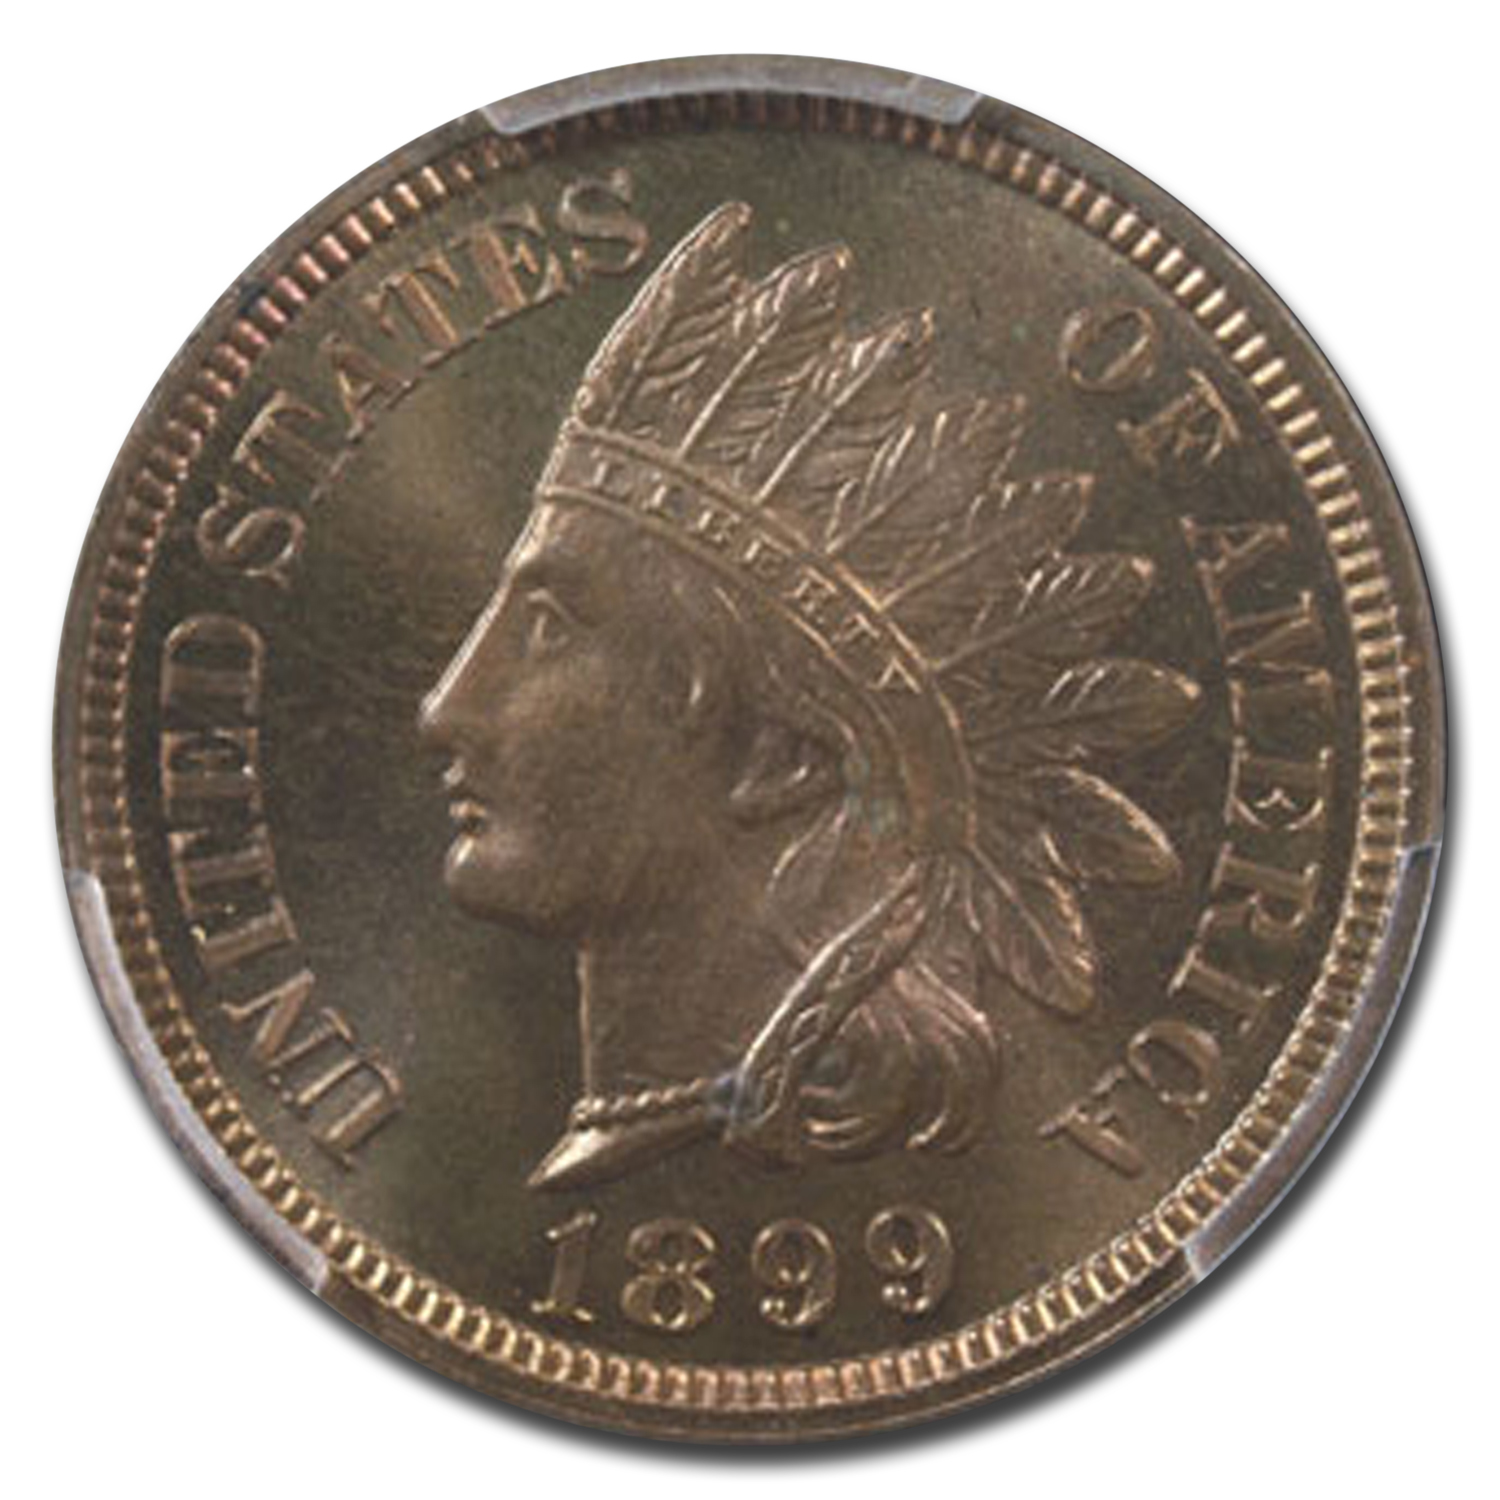 1899 Indian Head Cent PR-66 PCGS (Red/Brown)